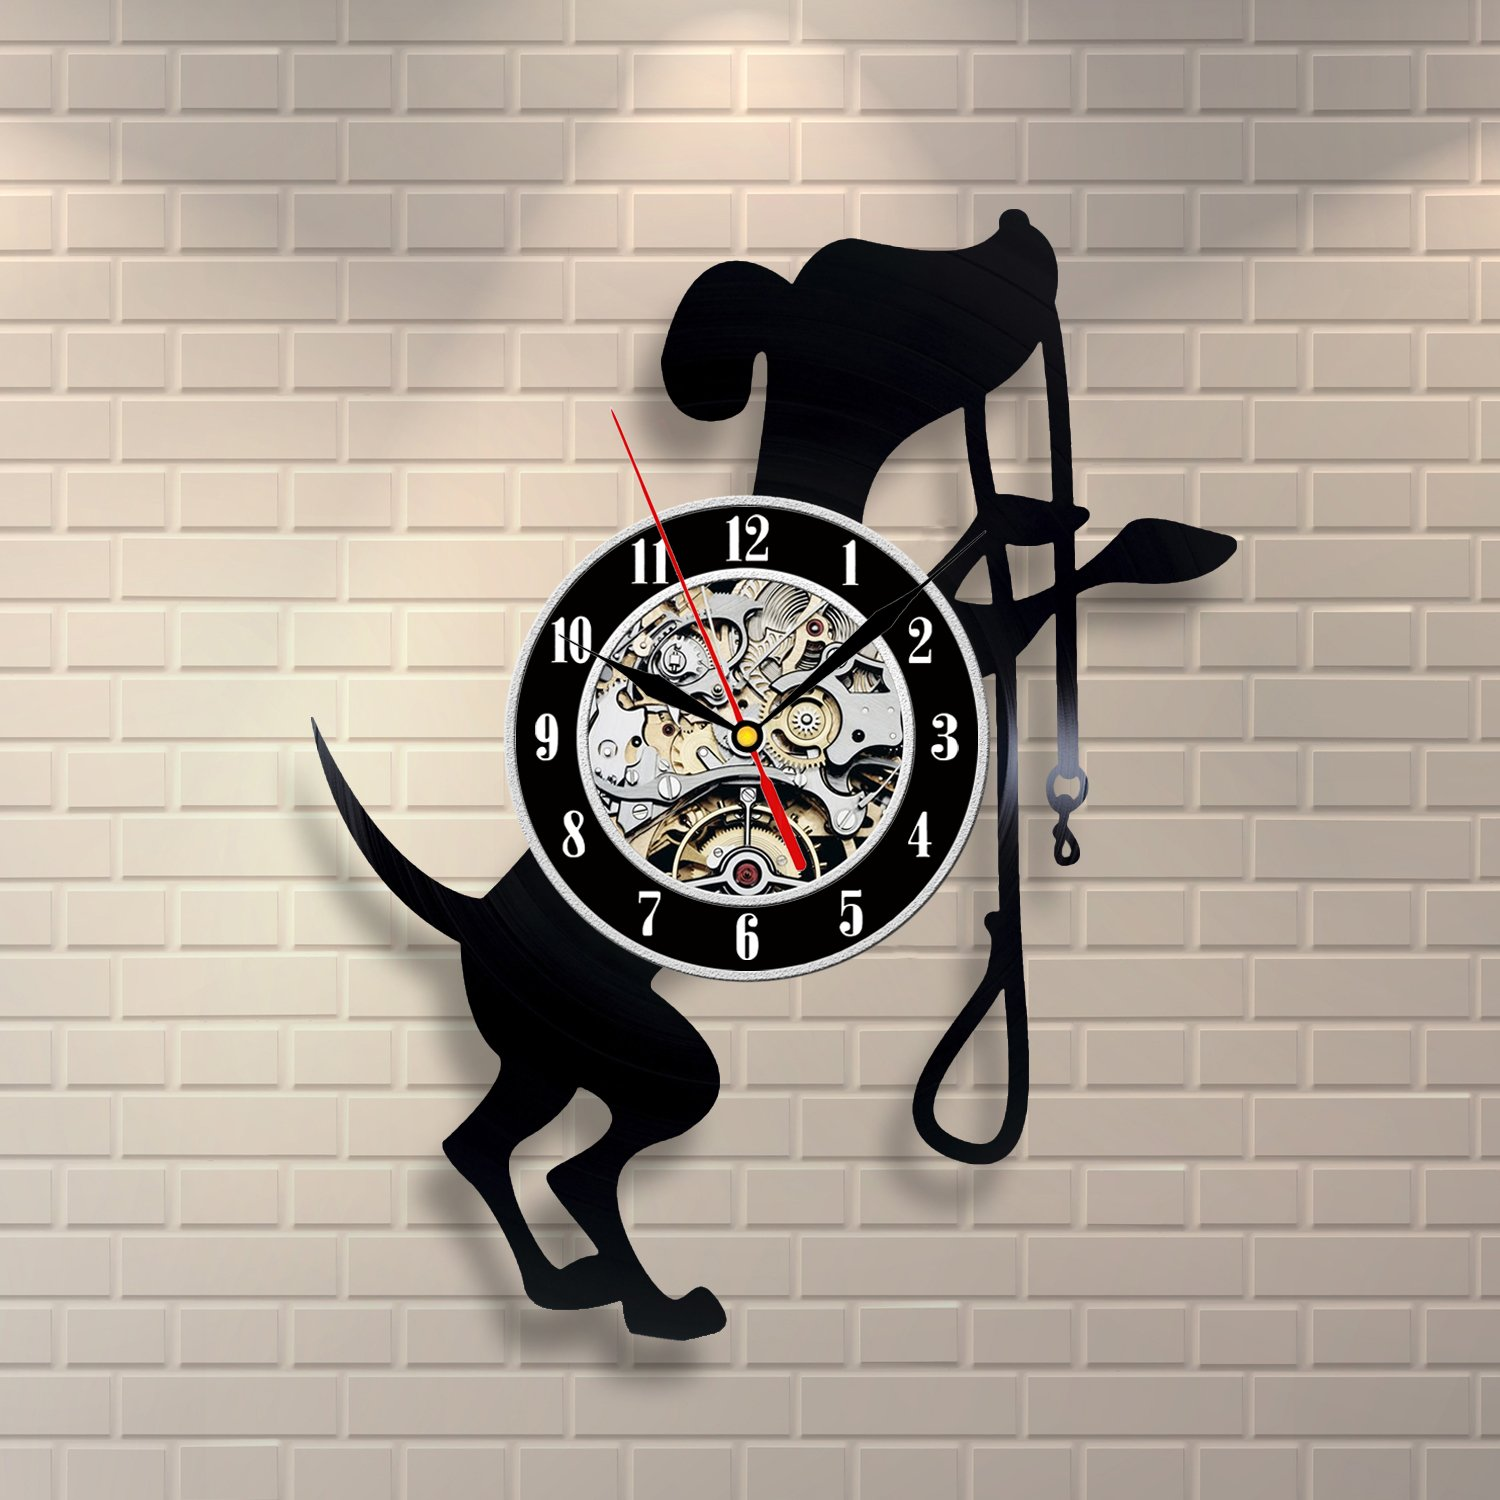 Dog Decor Vinyl Record Clock Home Design Room Art Animals